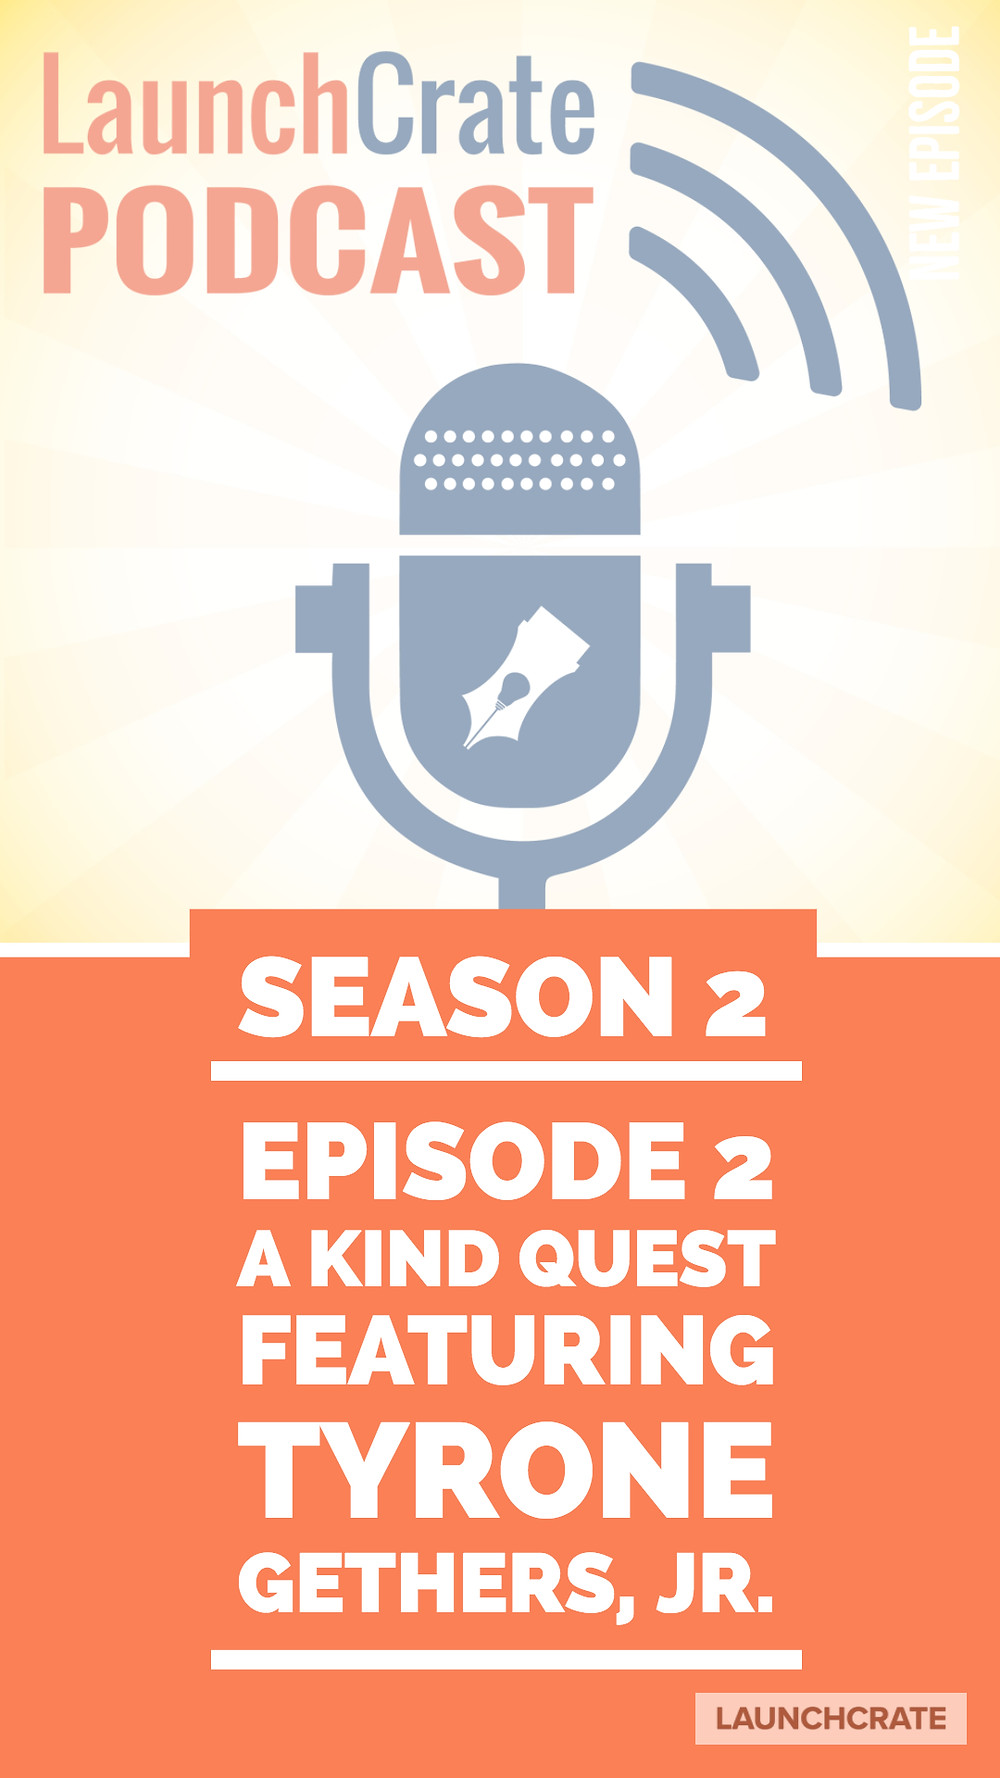 Podcast Season 2, Episode 2, with Tyrone Gethers, Jr.